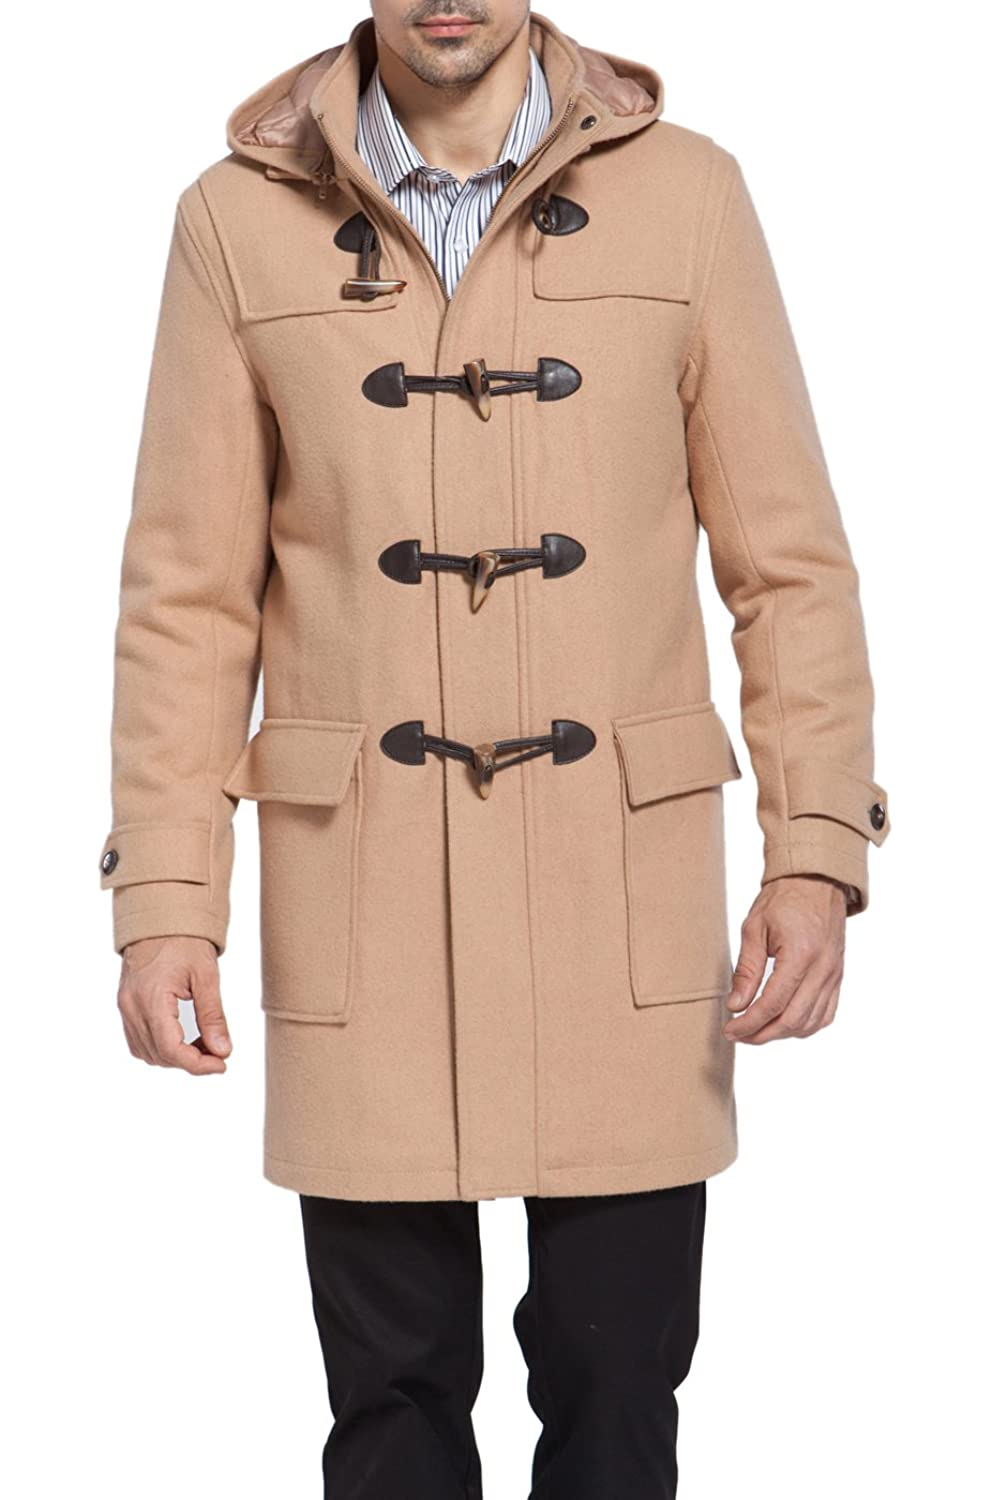 Next Mens Duffle Coat | Fashion Women's Coat 2017